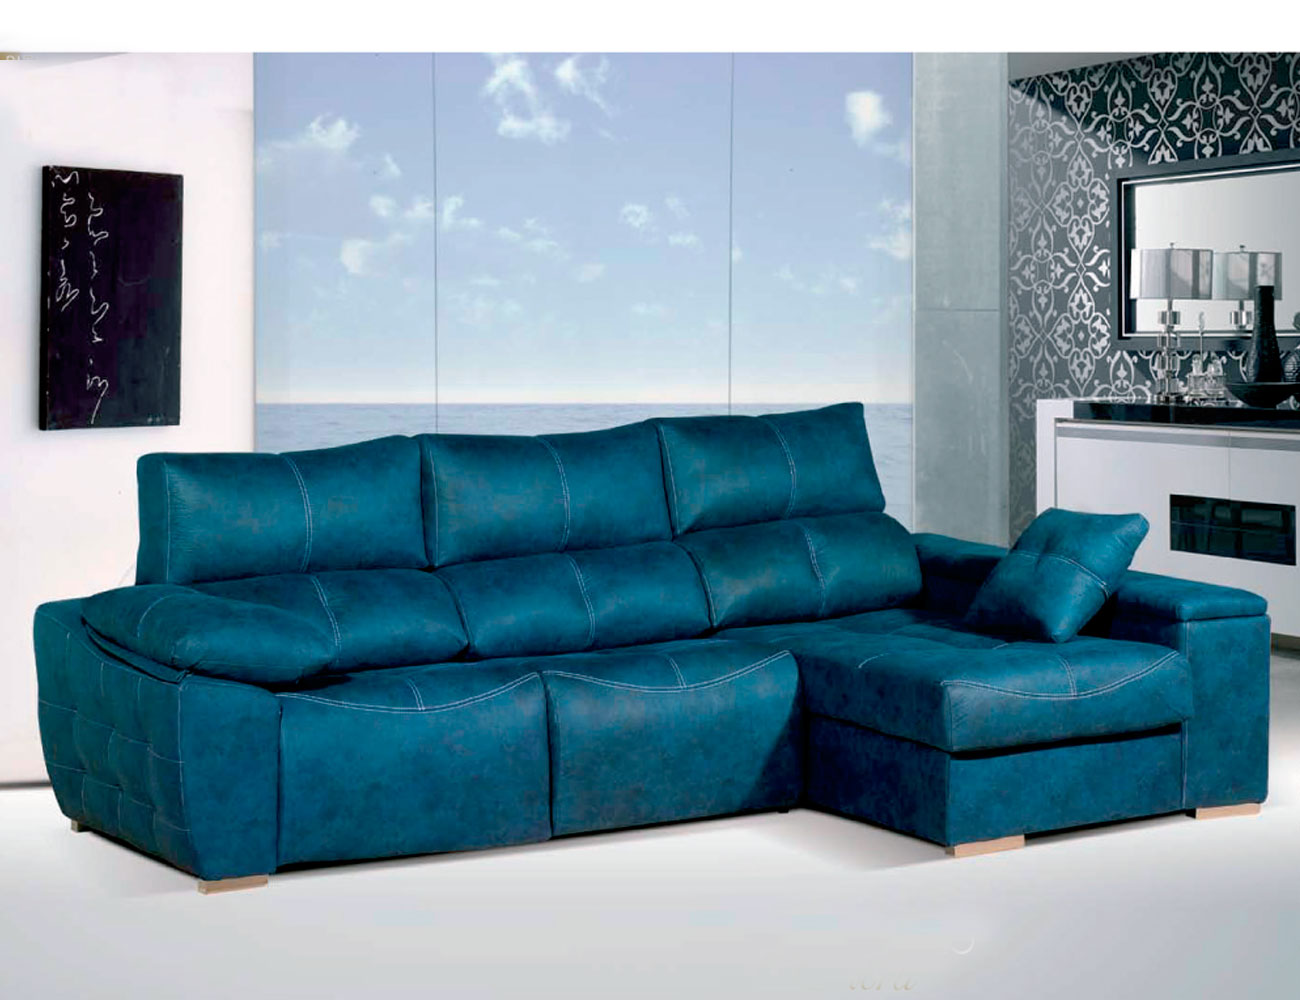 Sofa chaiselongue relax 2 motores anti manchas turquesa37